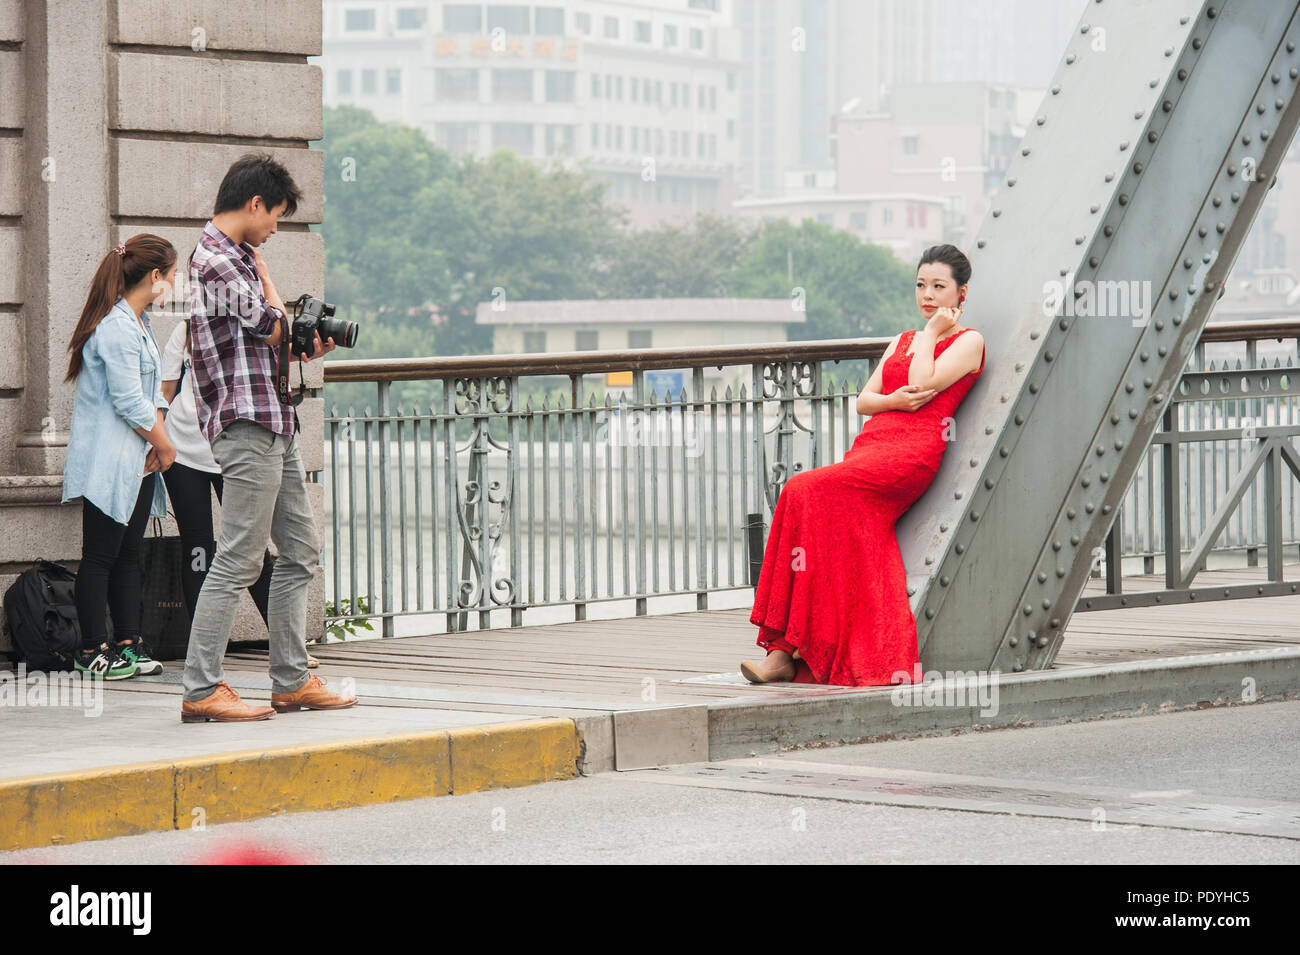 Shanghai, China - October 20, 2014. Photographer and a female fashion model during a photo shoot on a bridge over the Huangpu River in Shanghai. Stock Photo